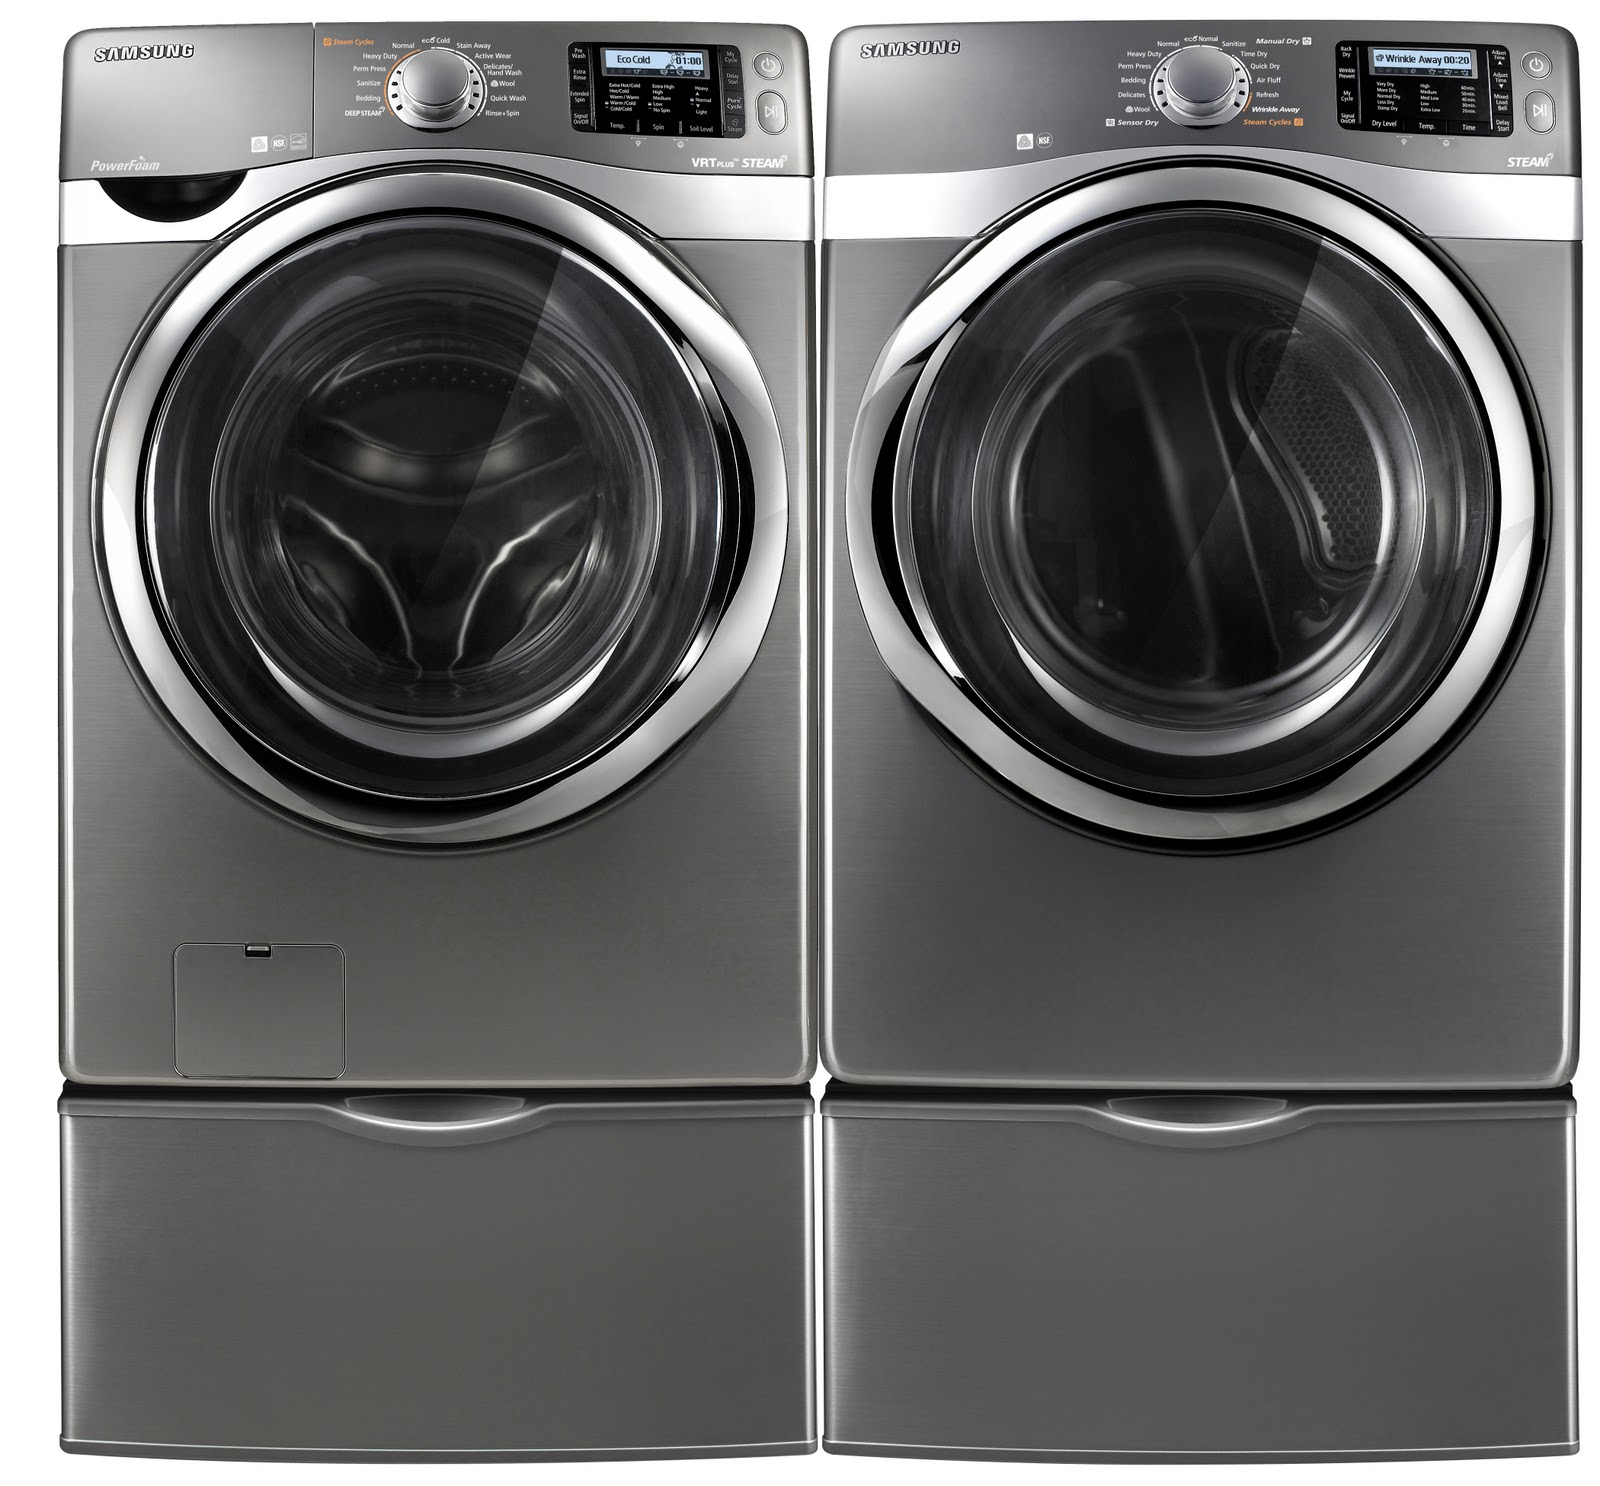 Major Large Home Appliances